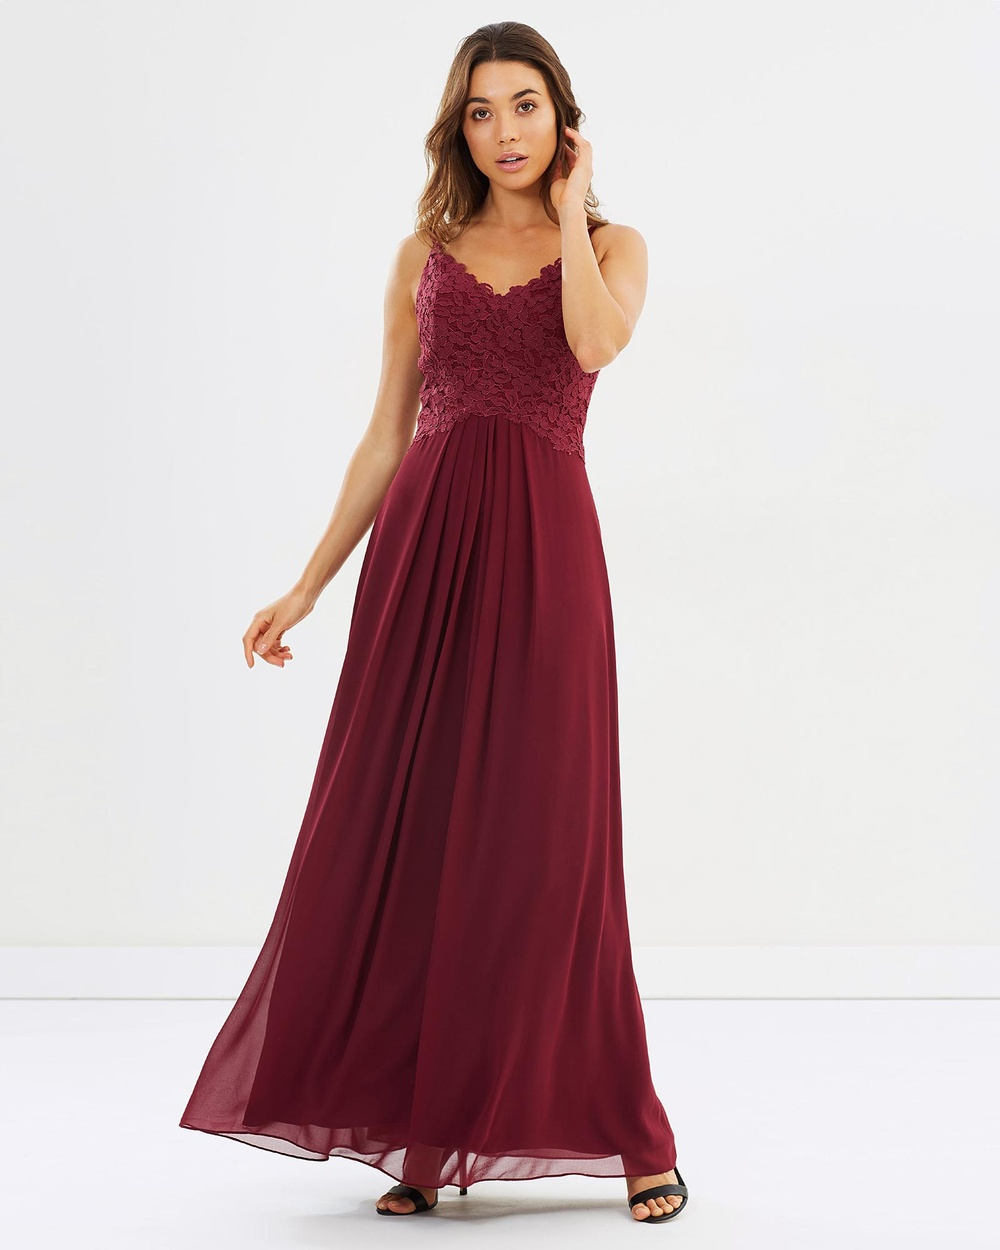 Alabaster The Label New Romantic Dress Bridesmaid Dresses Merlot Red New Romantic Dress